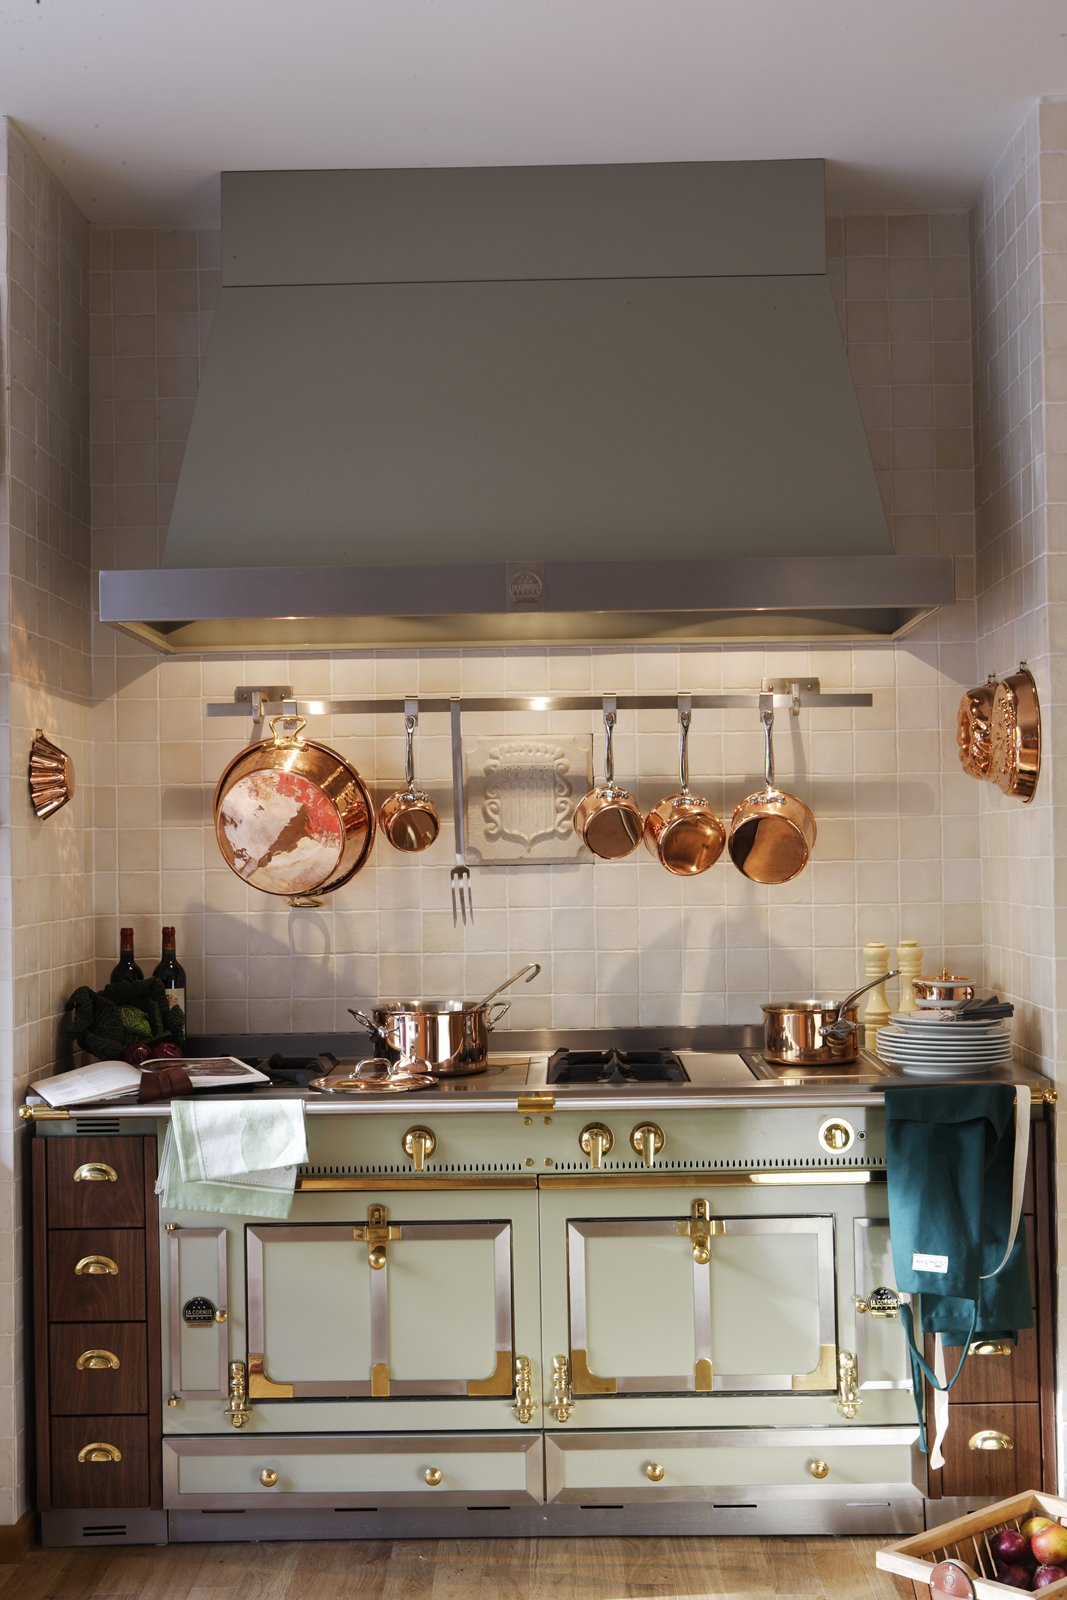 Emejing cucine a gas country photos - Cucine in stile ...